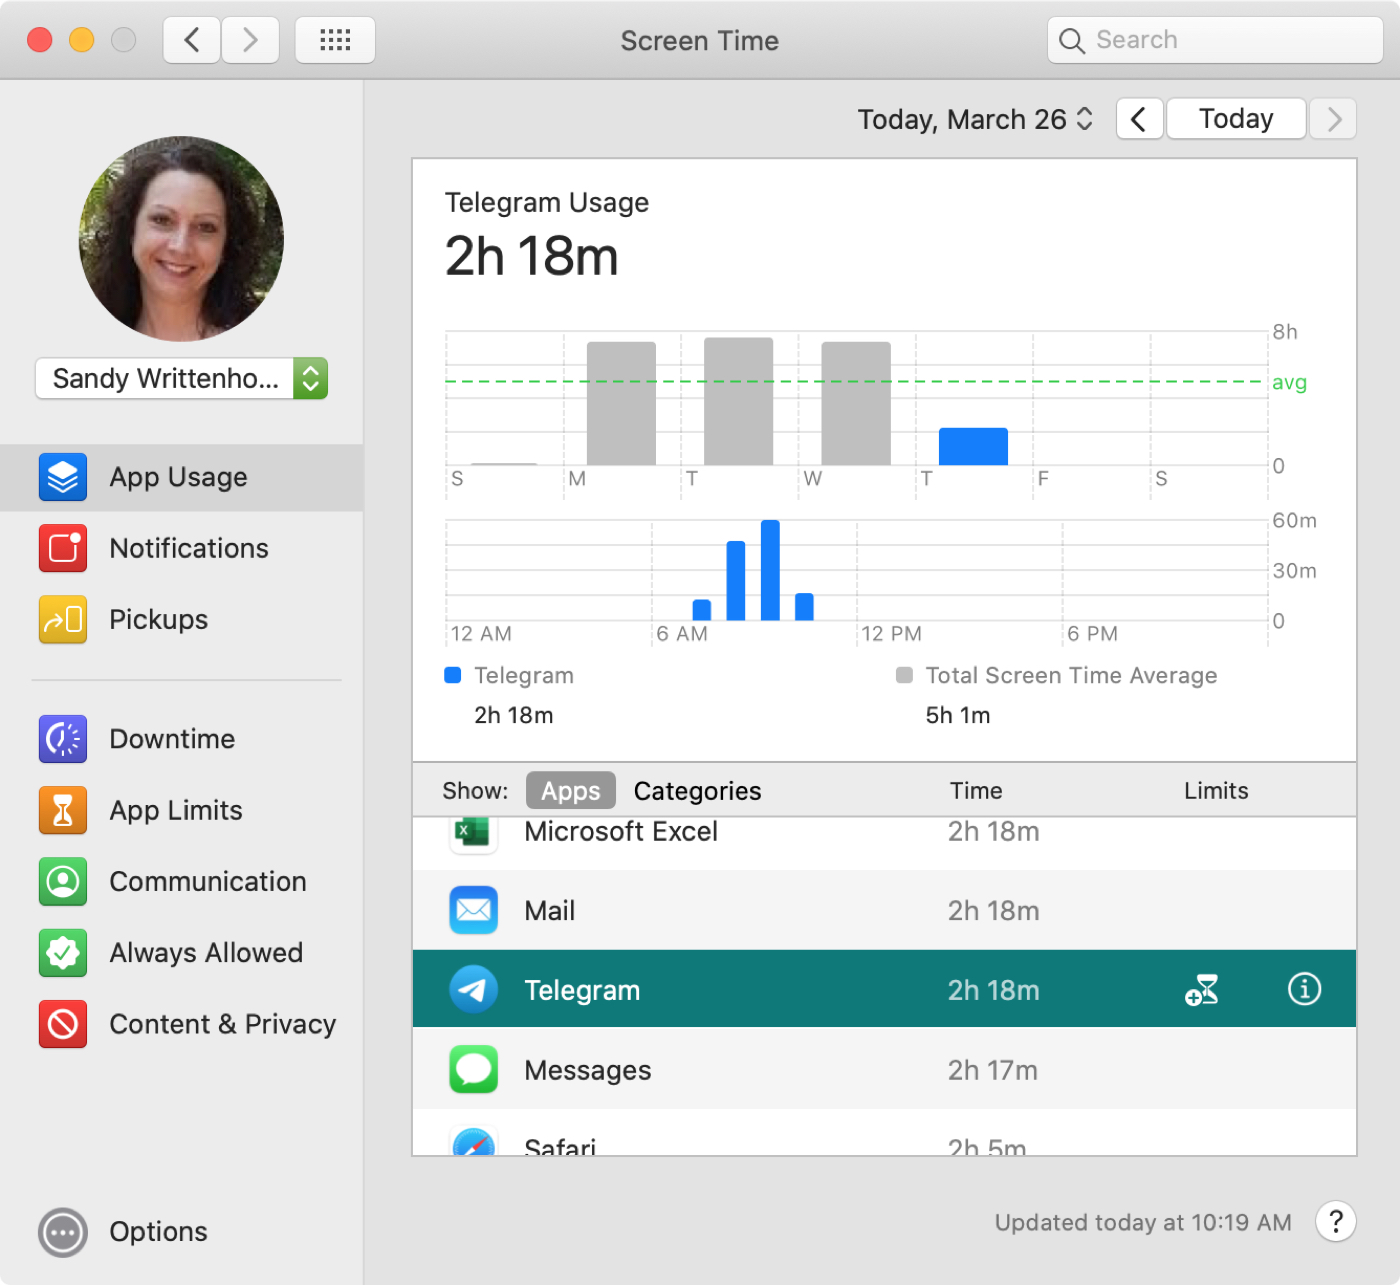 Screen Time App Usage Telegram Mac